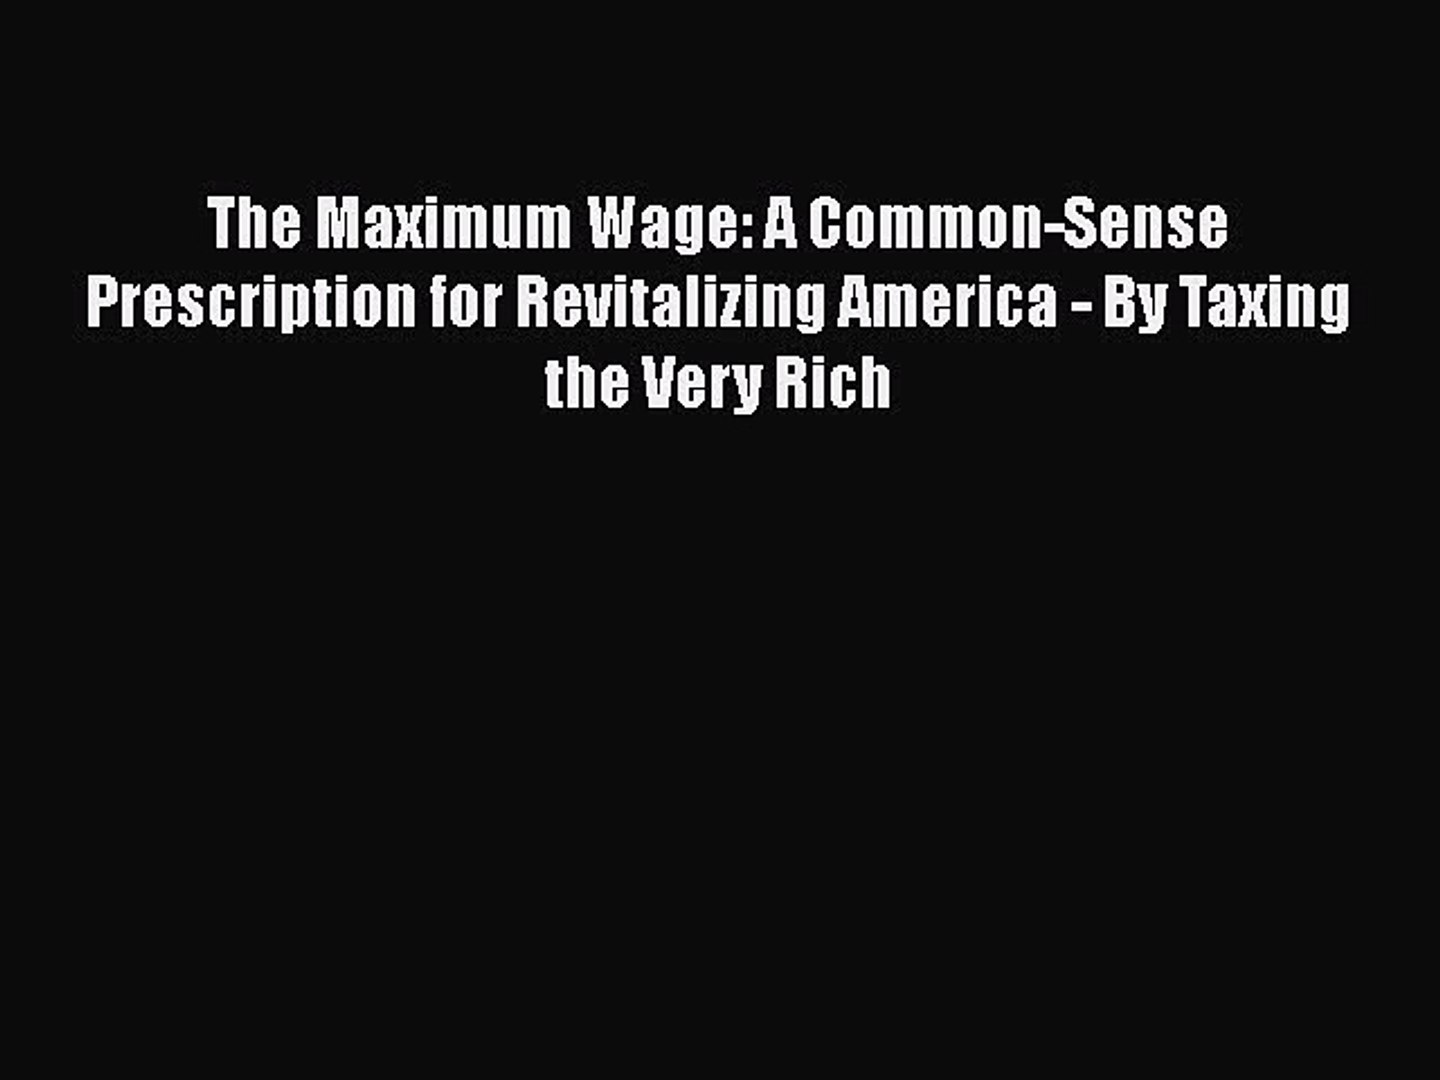 [Read] The Maximum Wage: A Common-Sense Prescription for Revitalizing America - By Taxing the